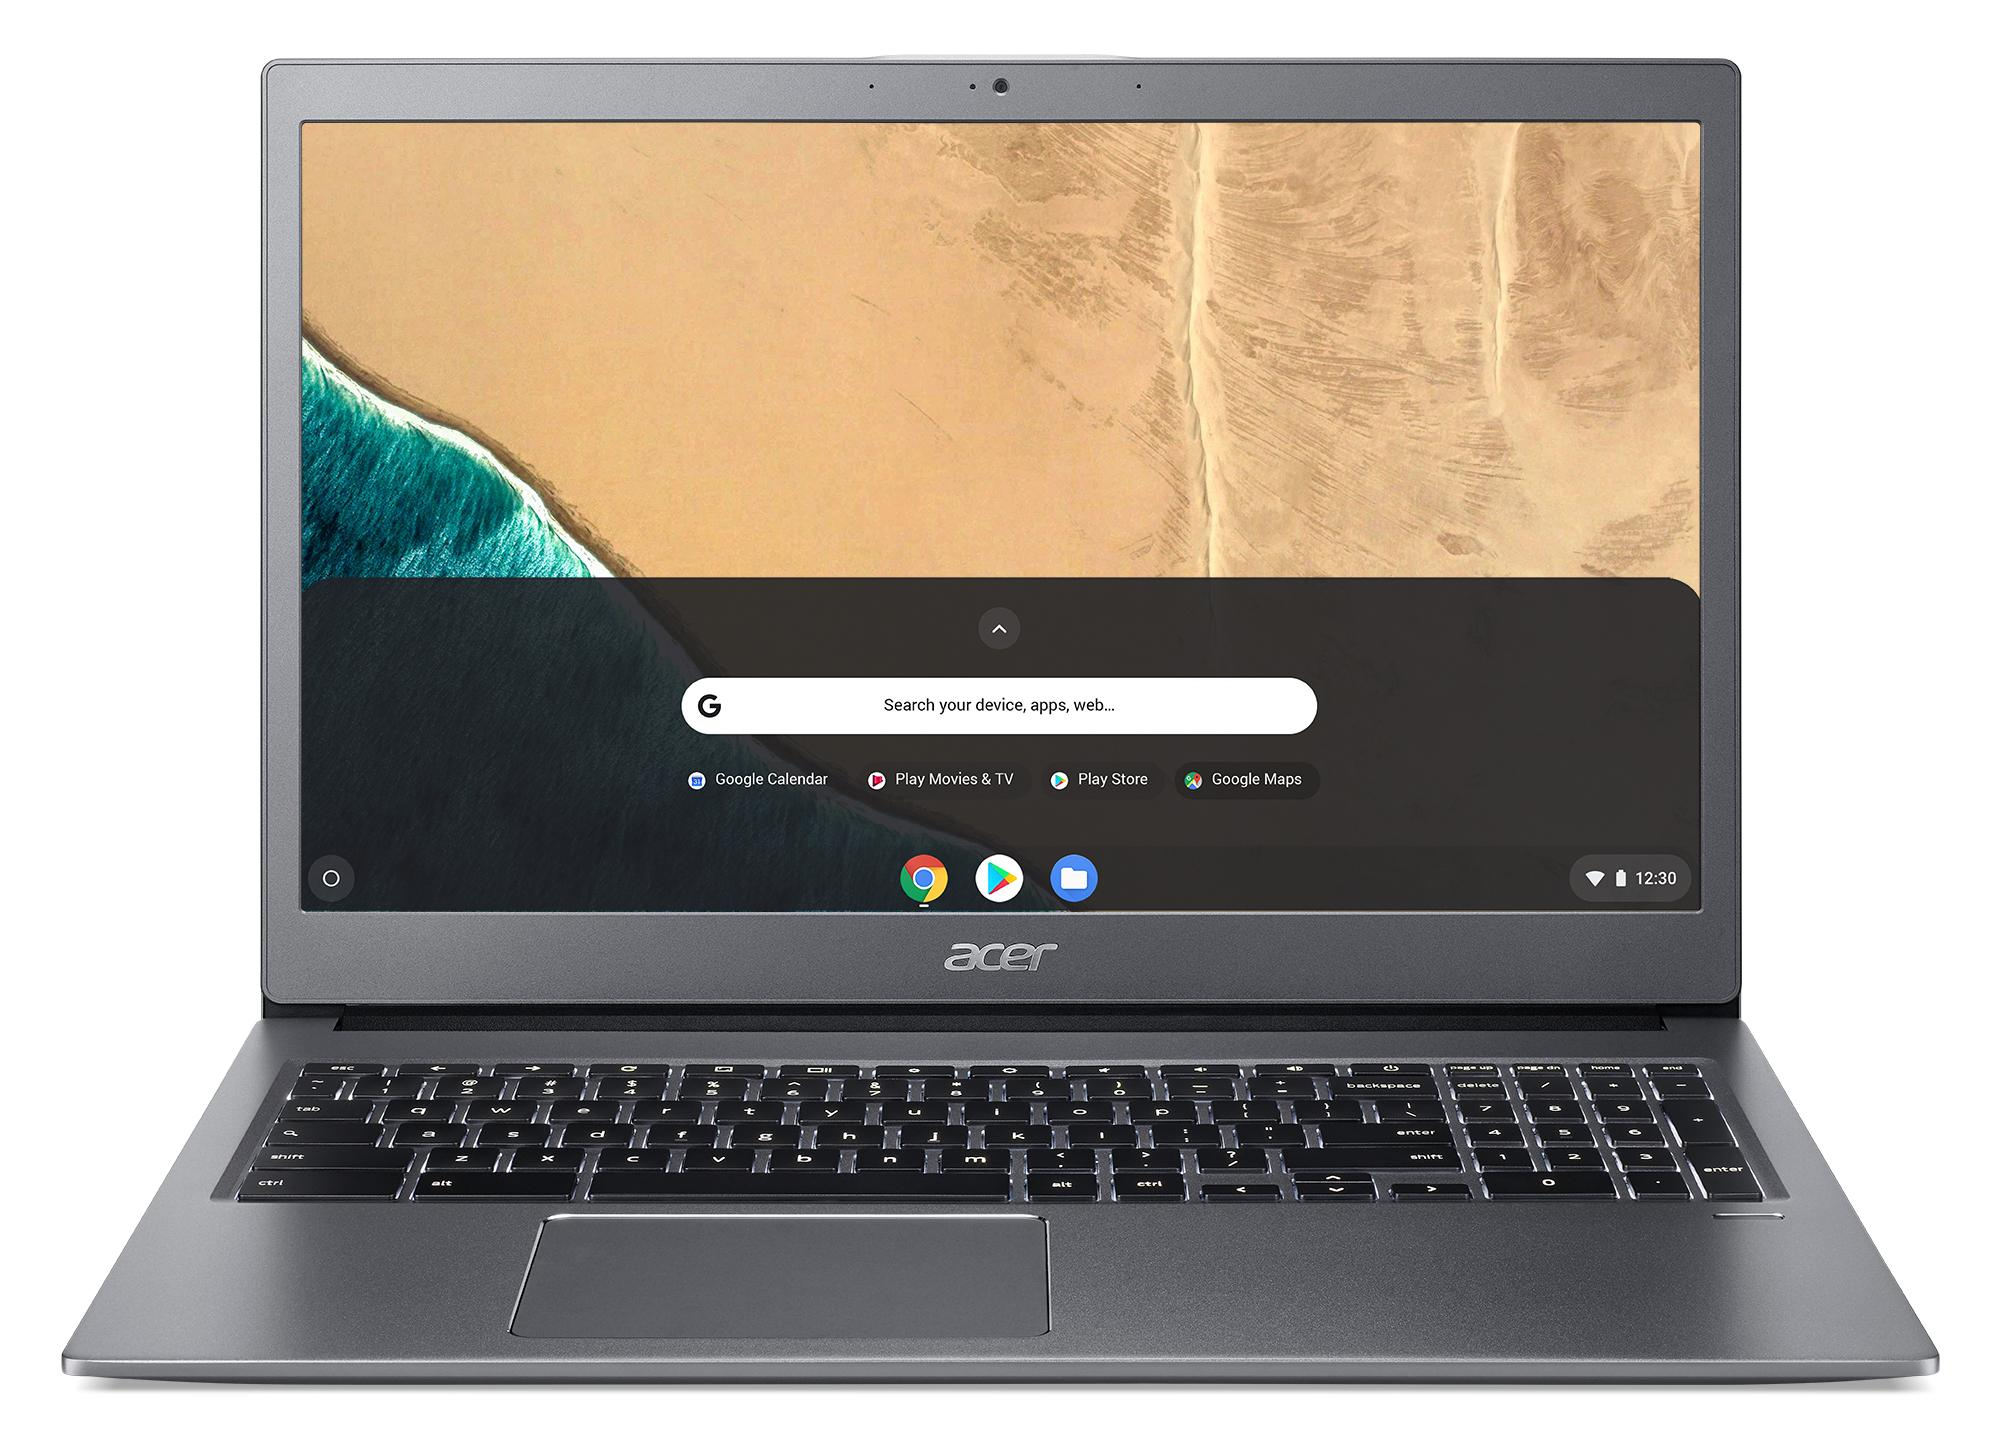 "NX.HB2EC.002 Acer Chromebook 715 - 15,6""/i3-8130U/8G/128GB/Chrome šedý"